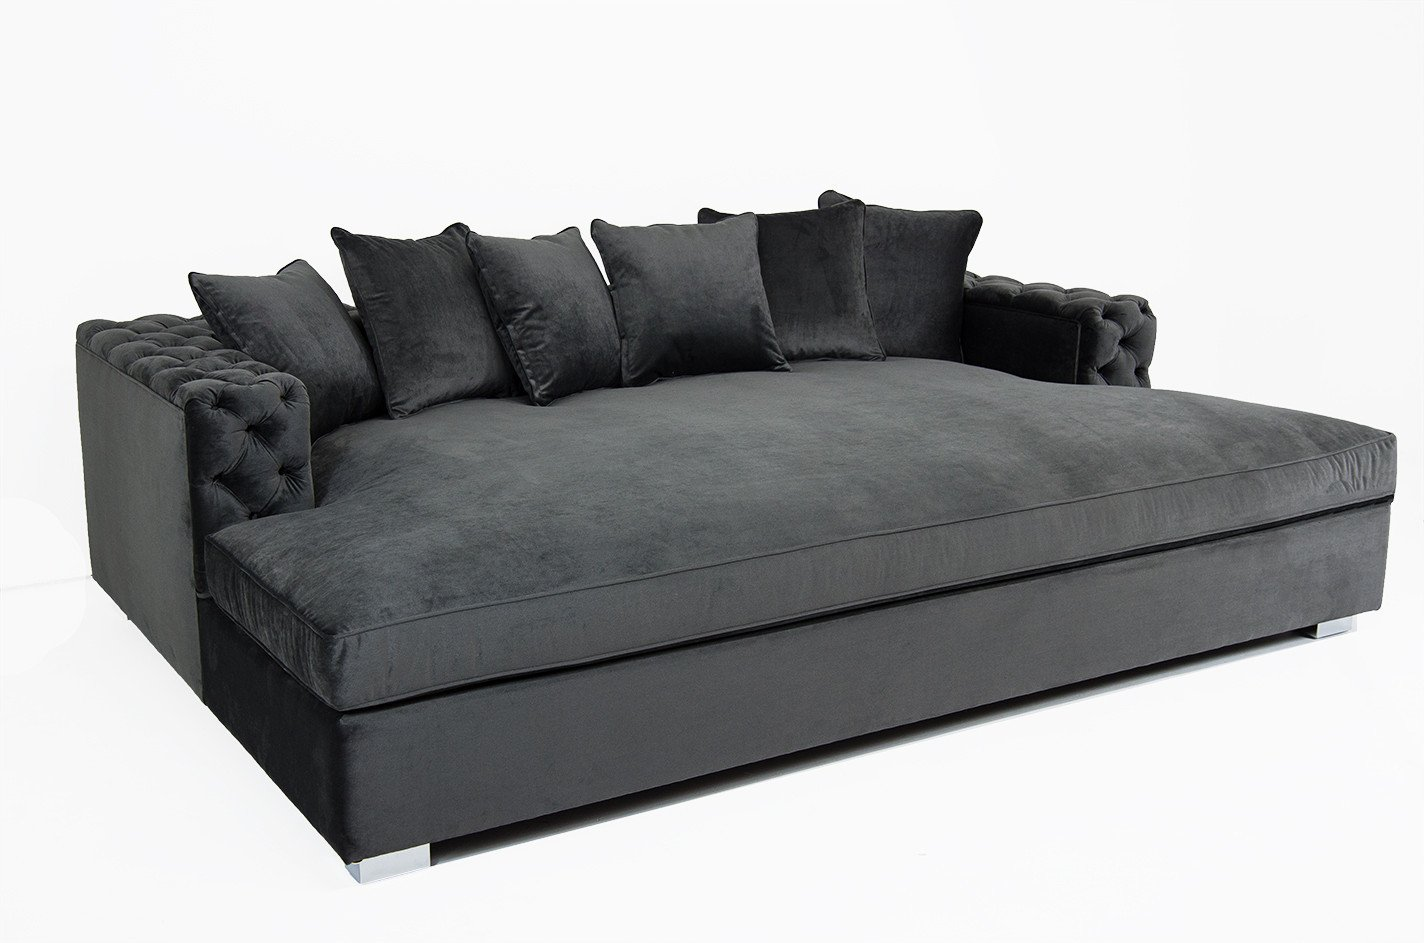 Comfortable Daybeds Living Room Daybed fortable sofa Design Wayfair Daybeds Sectional